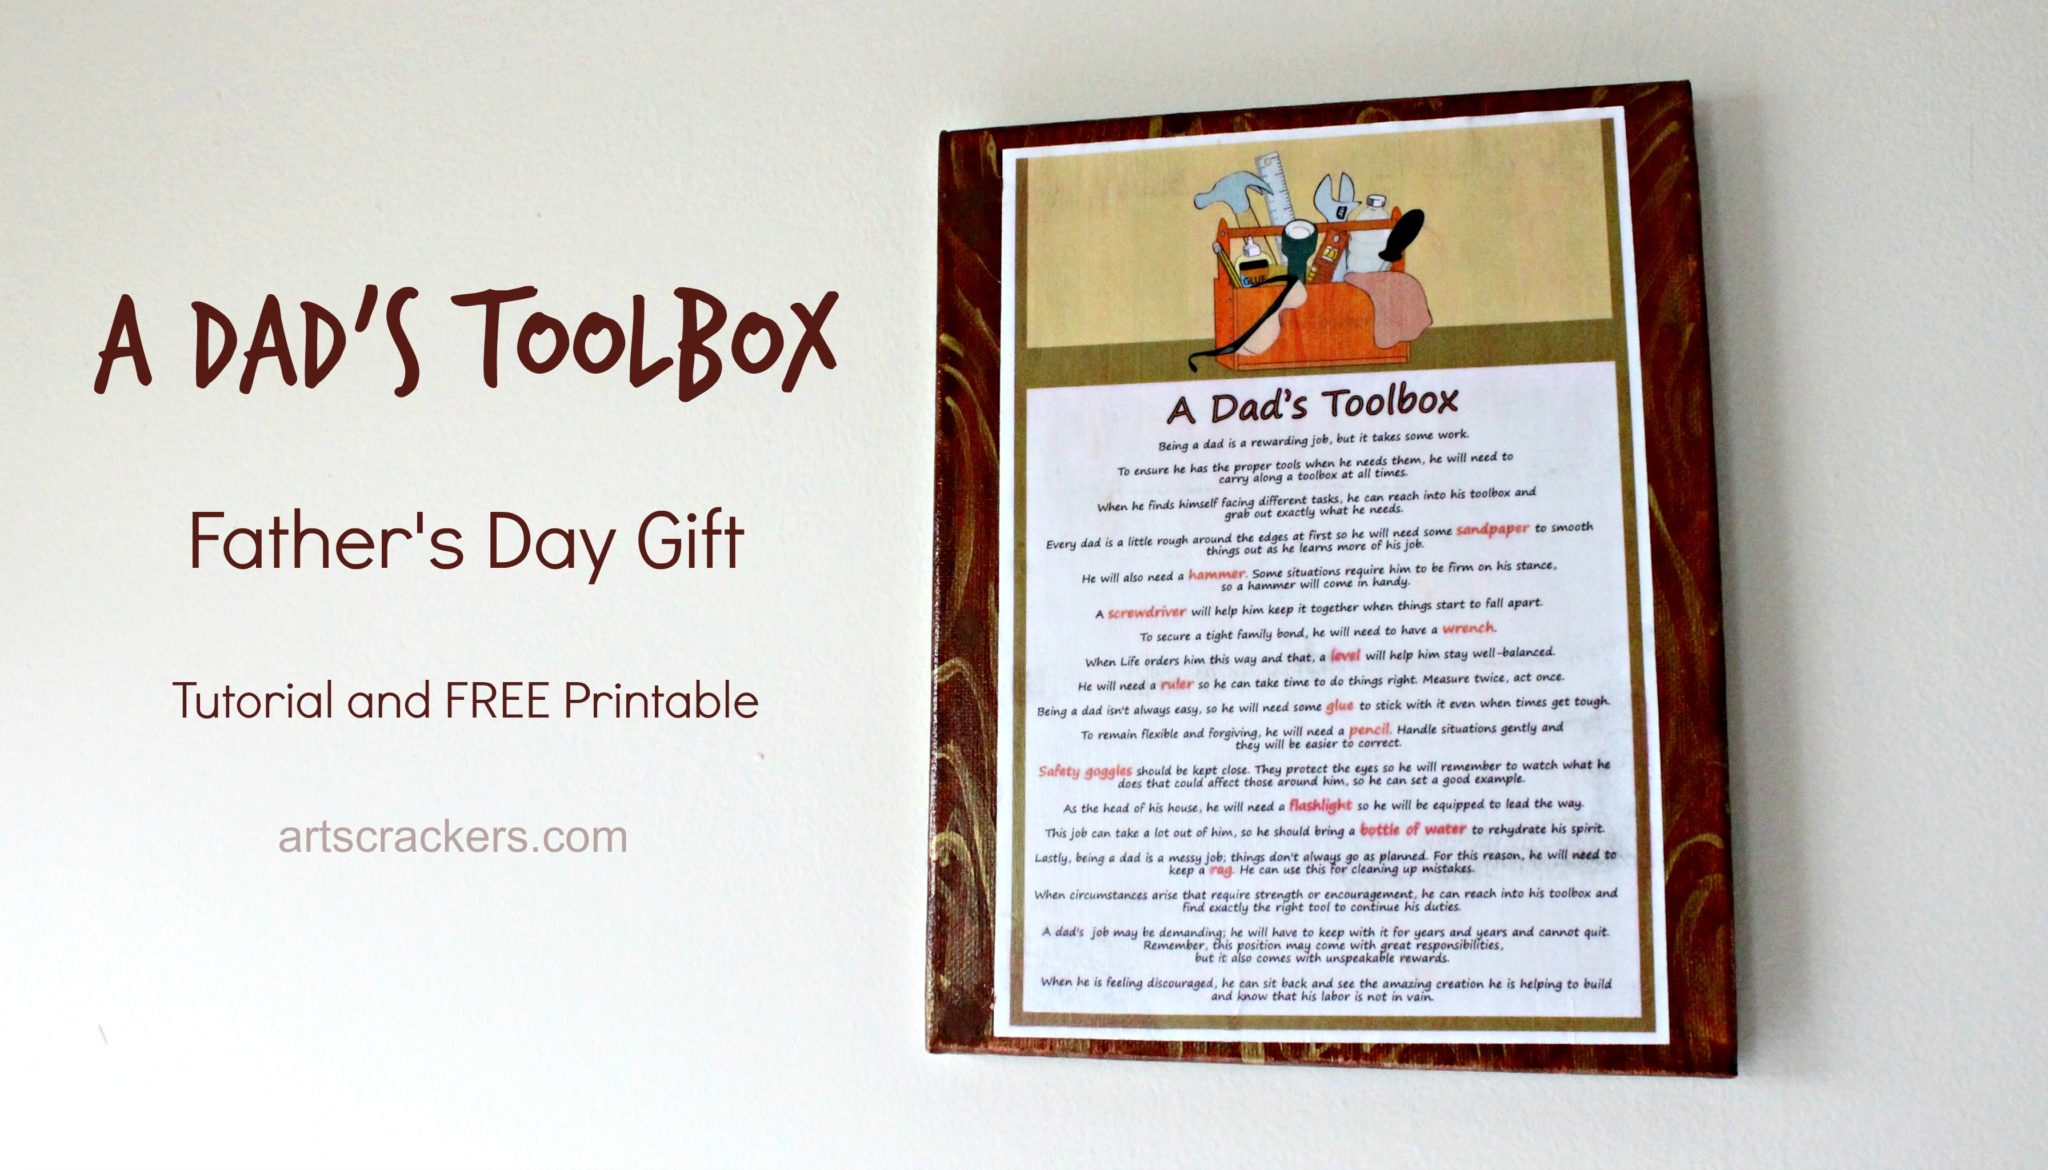 A Dad's Toolbox Father's Day Gift and Free Printable